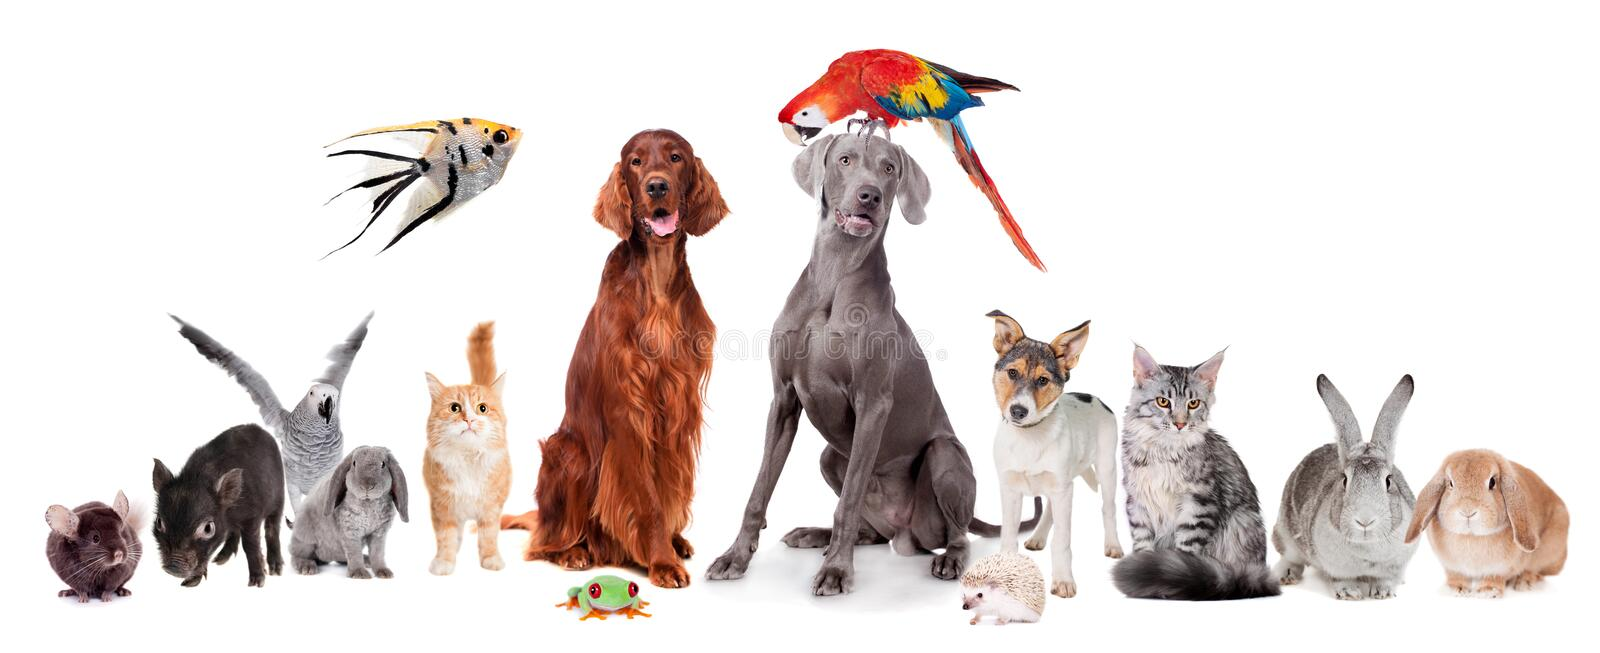 Group of pets on white royalty free stock images